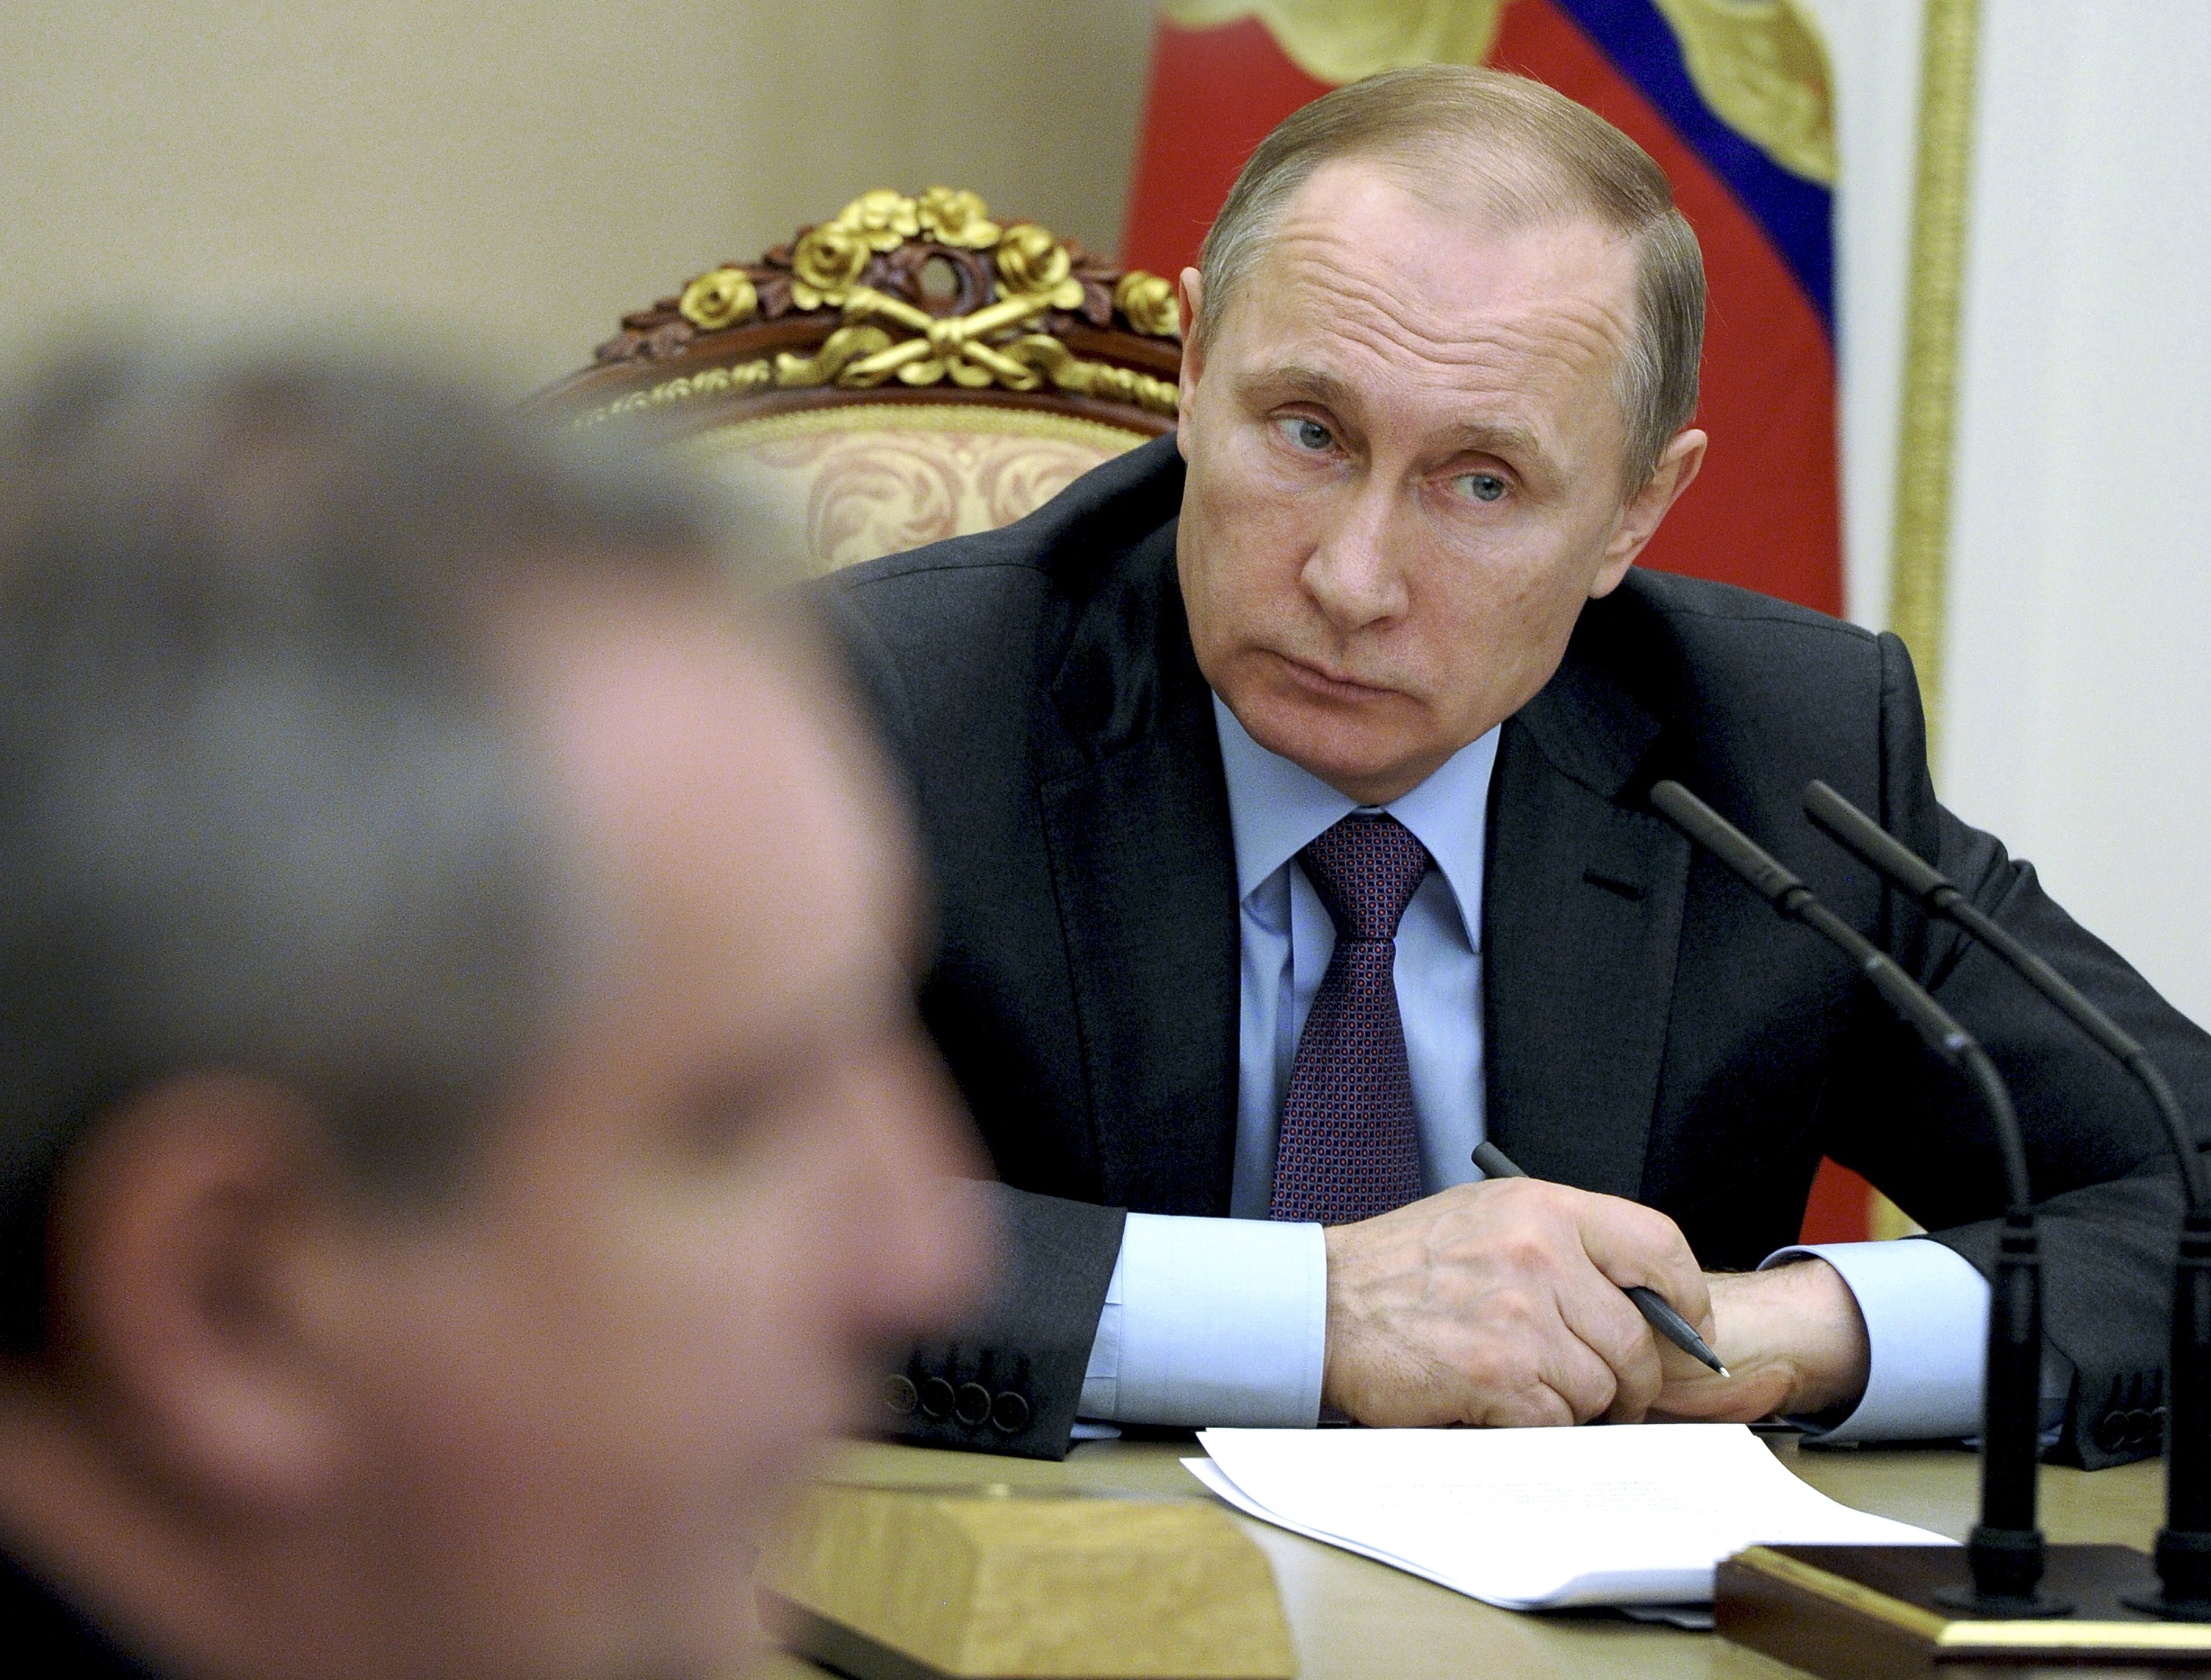 Russian President Vladimir Putin chairs a meeting on counterwork against corruption at the Kremlin in Moscow, Russia, Jan. 26, 2016.